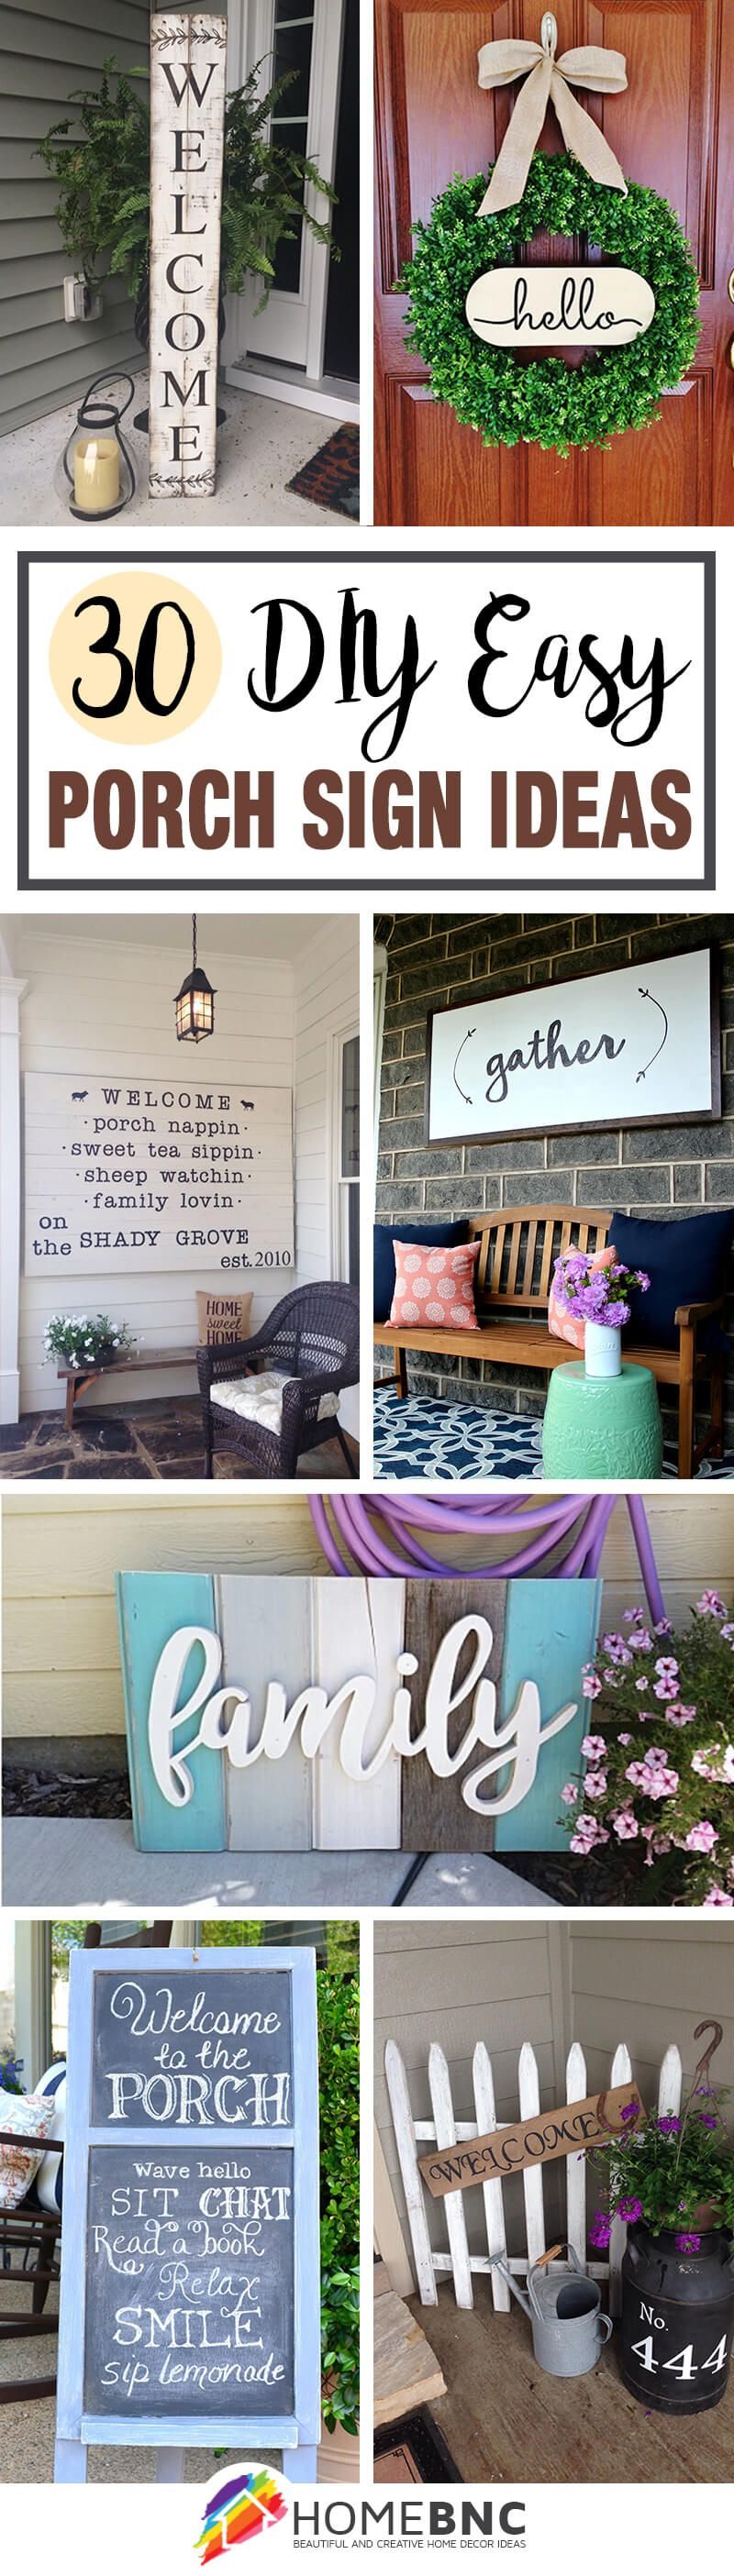 30 Easy DIY Front Porch Sign Ideas for Your Home | Hometalk: Summer ...